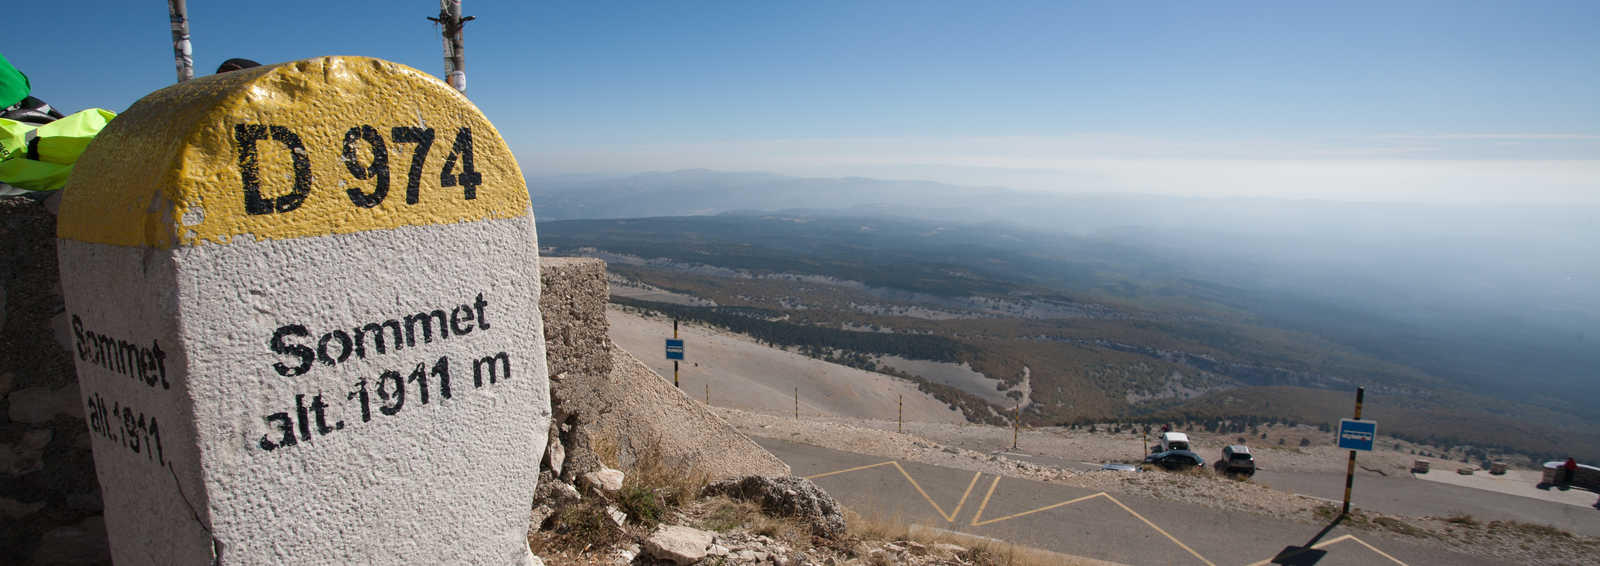 Ventoux summit